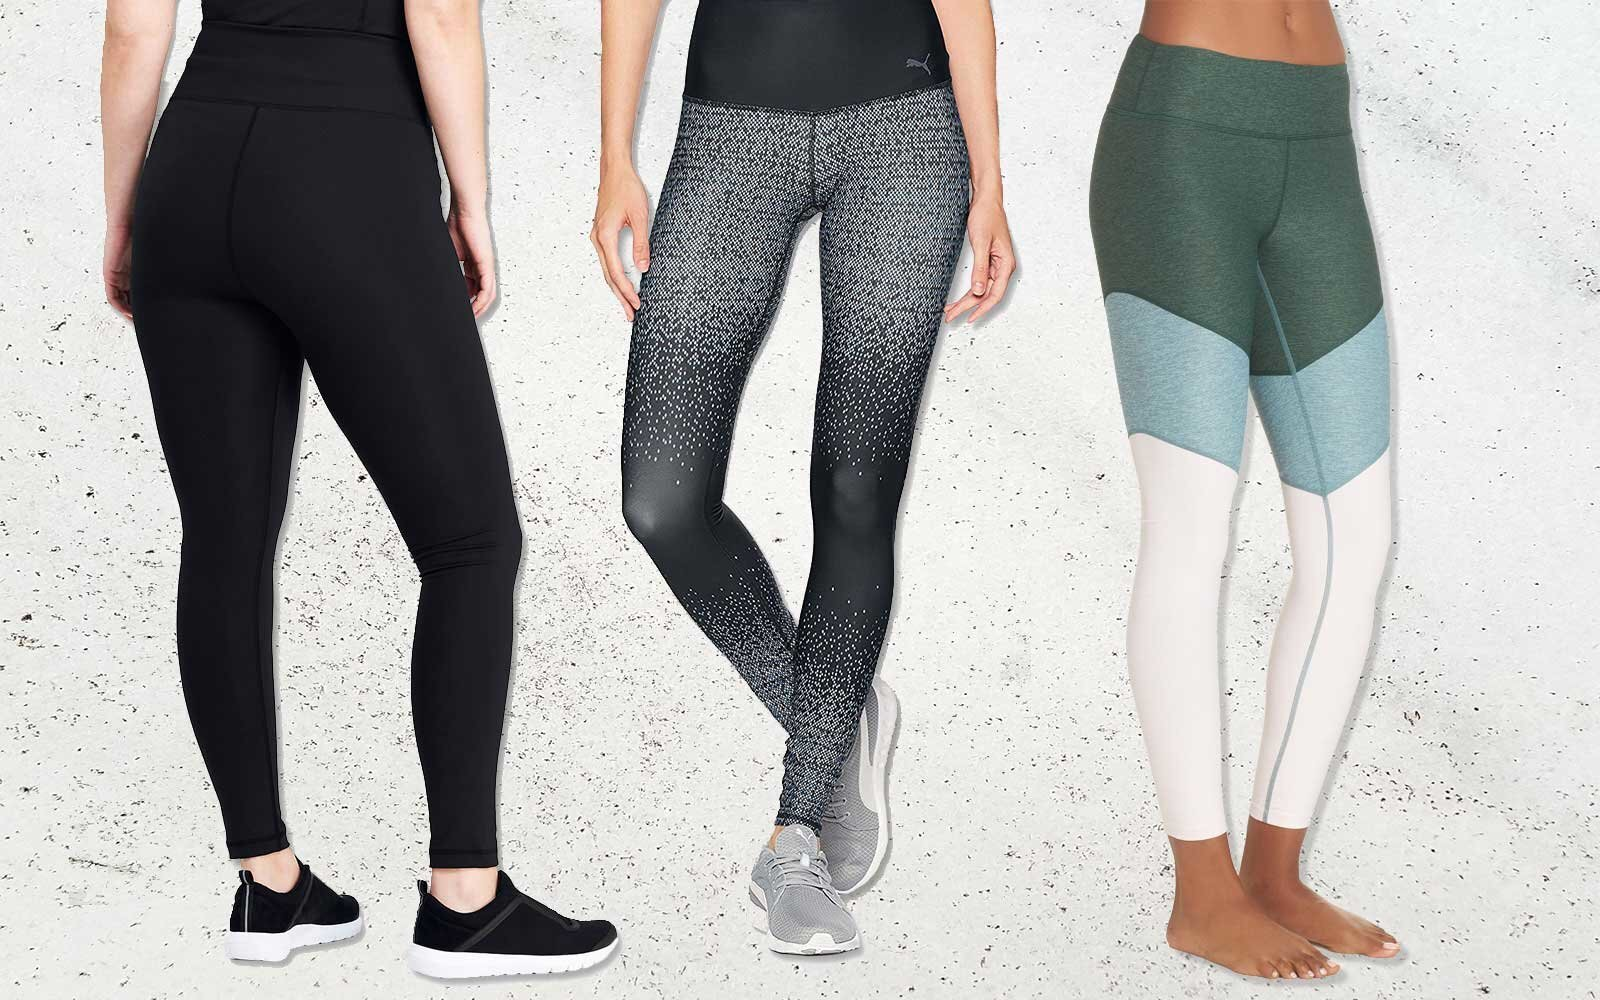 bd79e6db8a43e The Best Women's Compression Leggings for Travel | Travel + Leisure